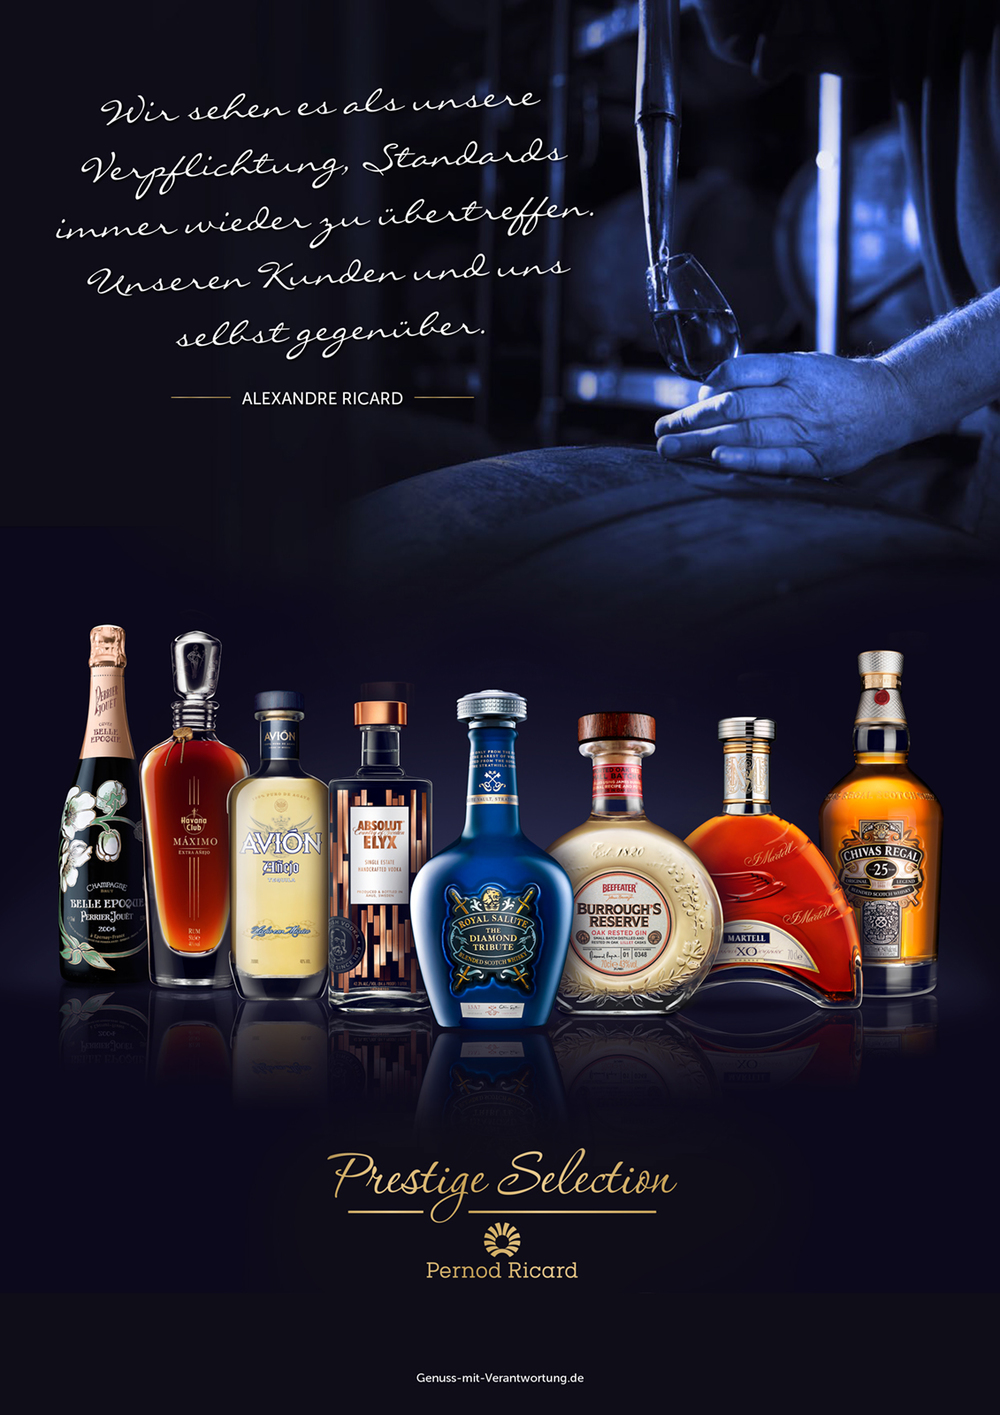 Client: Pernod Ricard